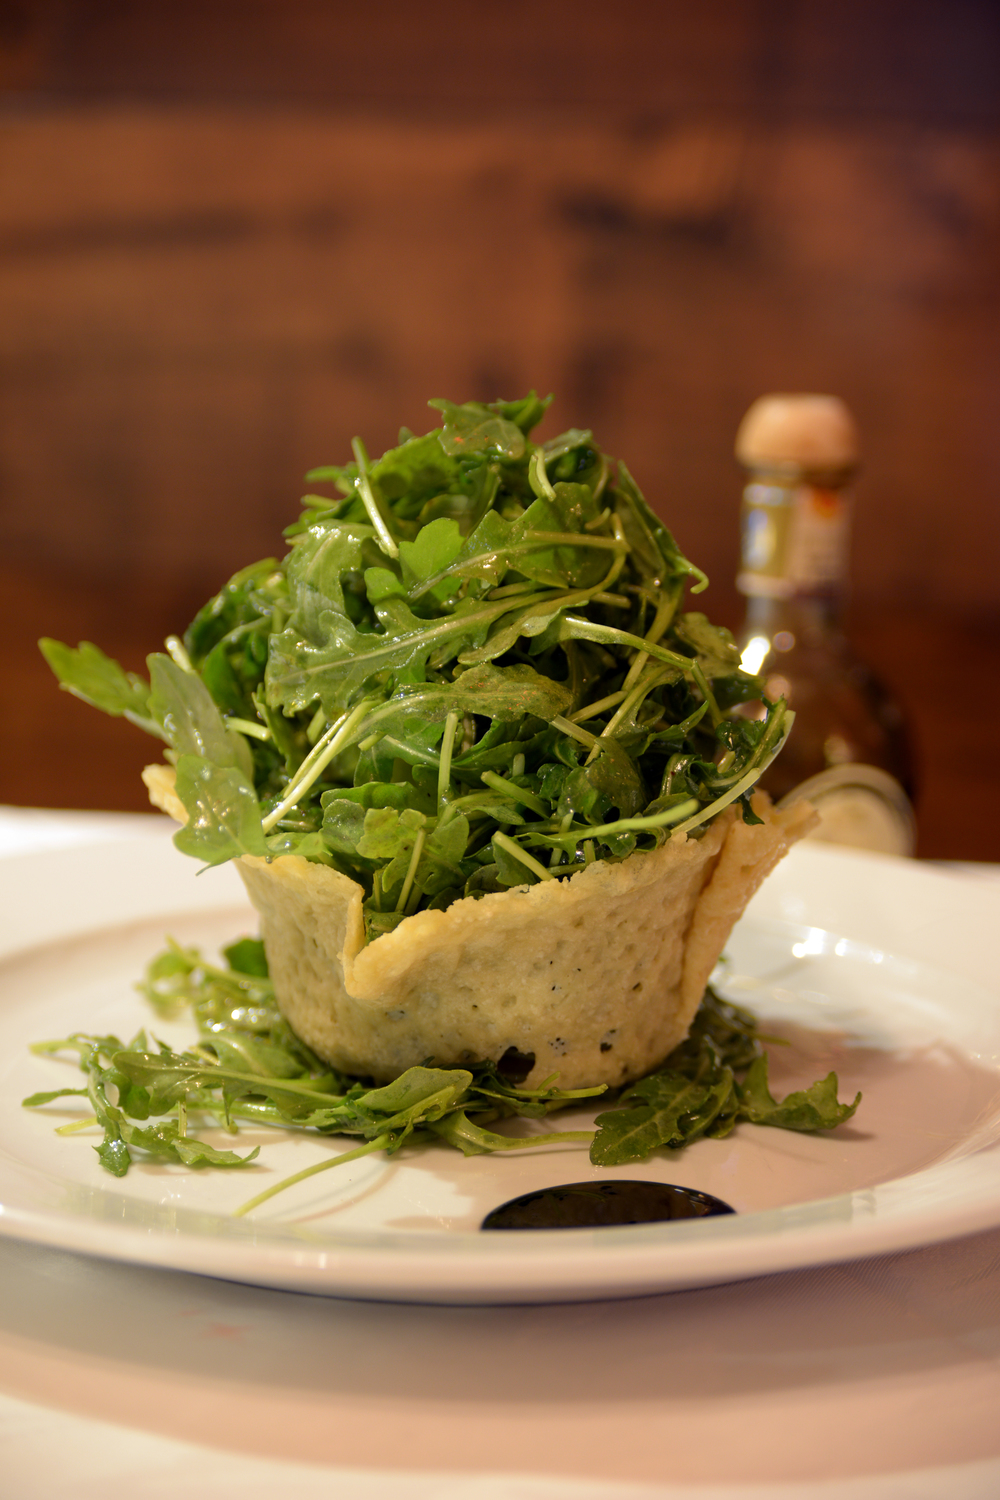 Arugula Salad in Parmigiano Reggiano Cheese Basket